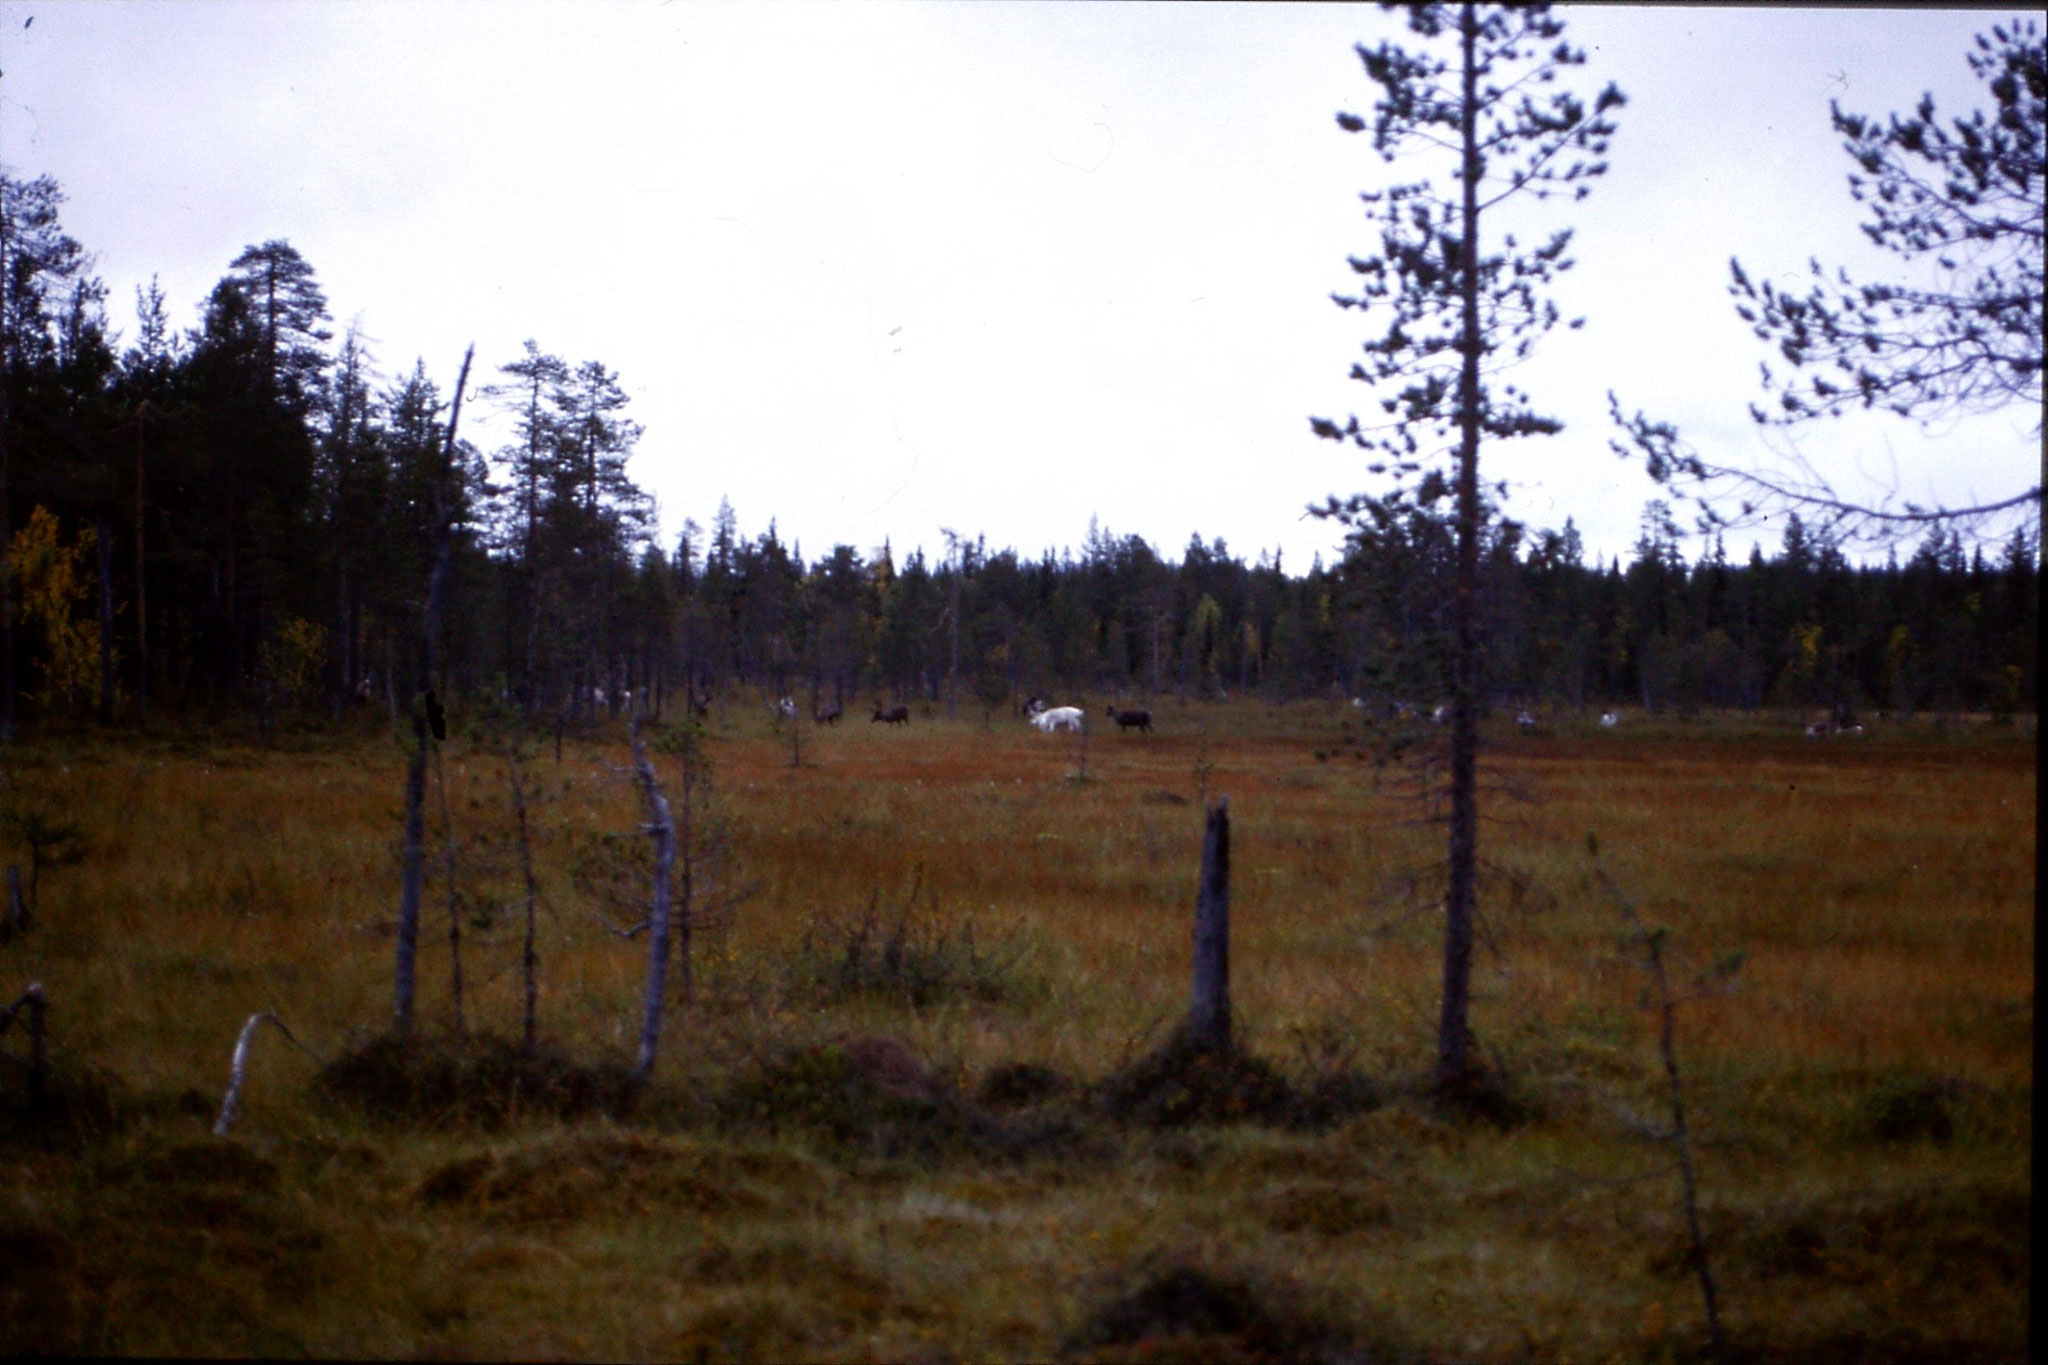 12/9/1988: 8: reindeer on road south from Jokkmokk